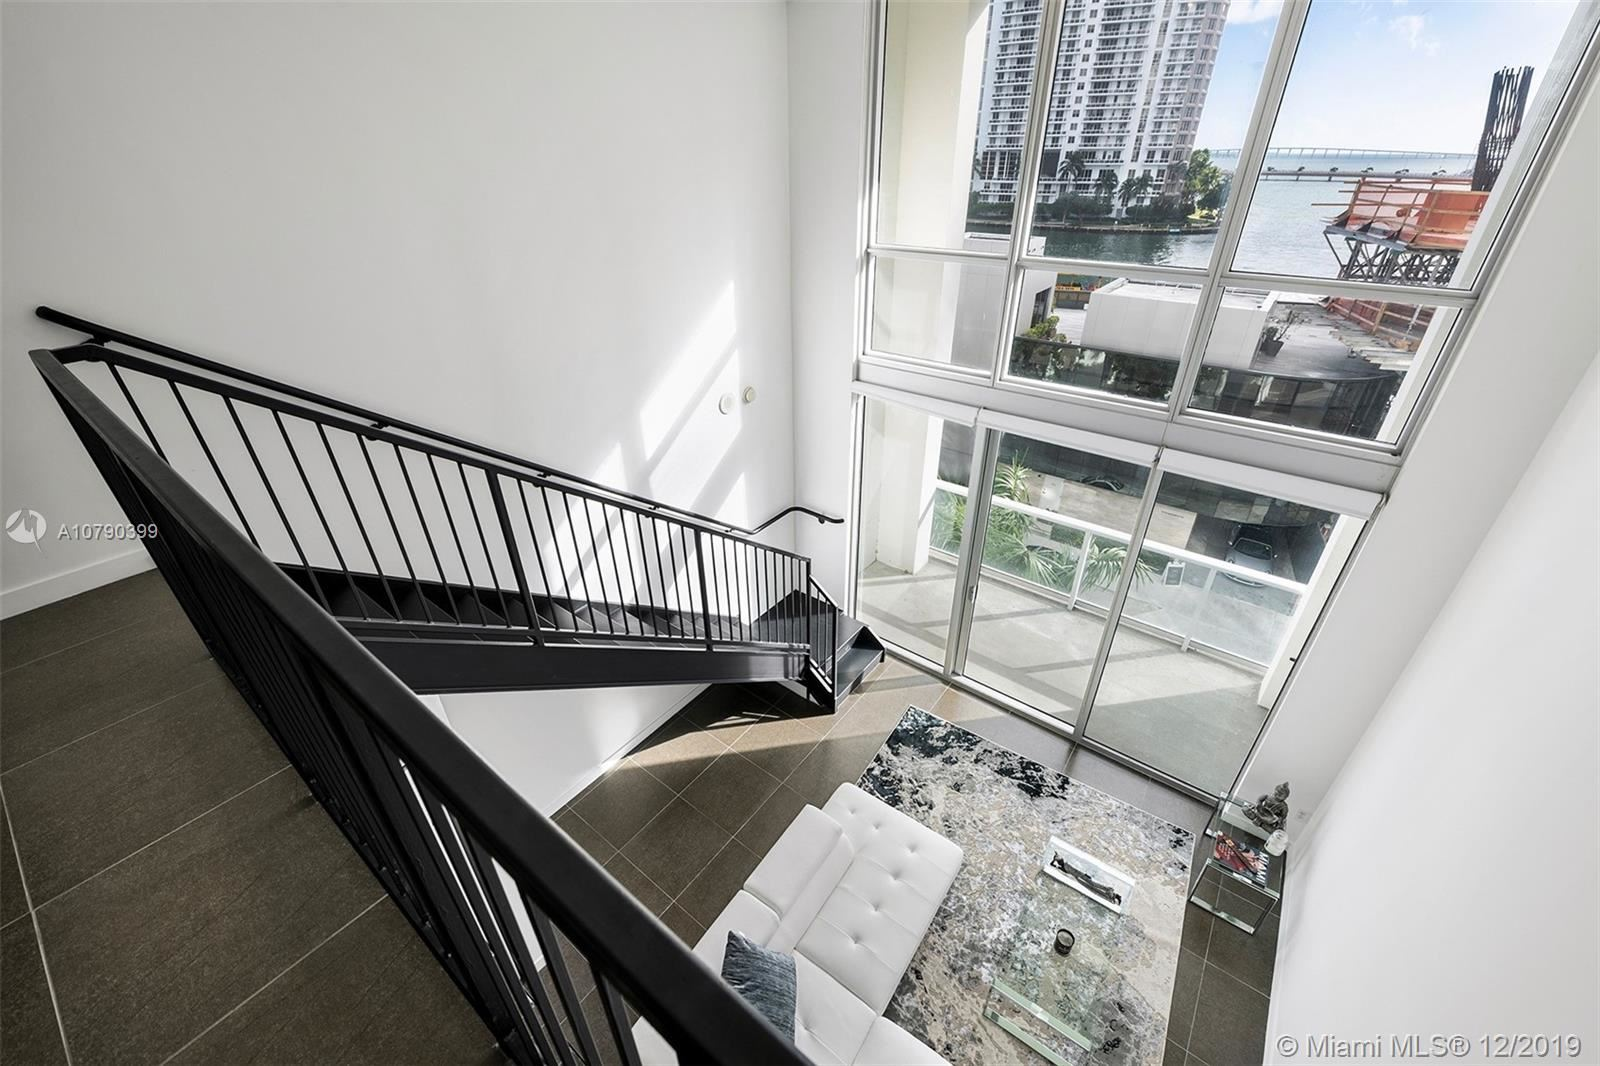 Photo 10 of Listing MLS a10790399 in 300 S BISCAYNE BLVD #L-410 Miami FL 33131